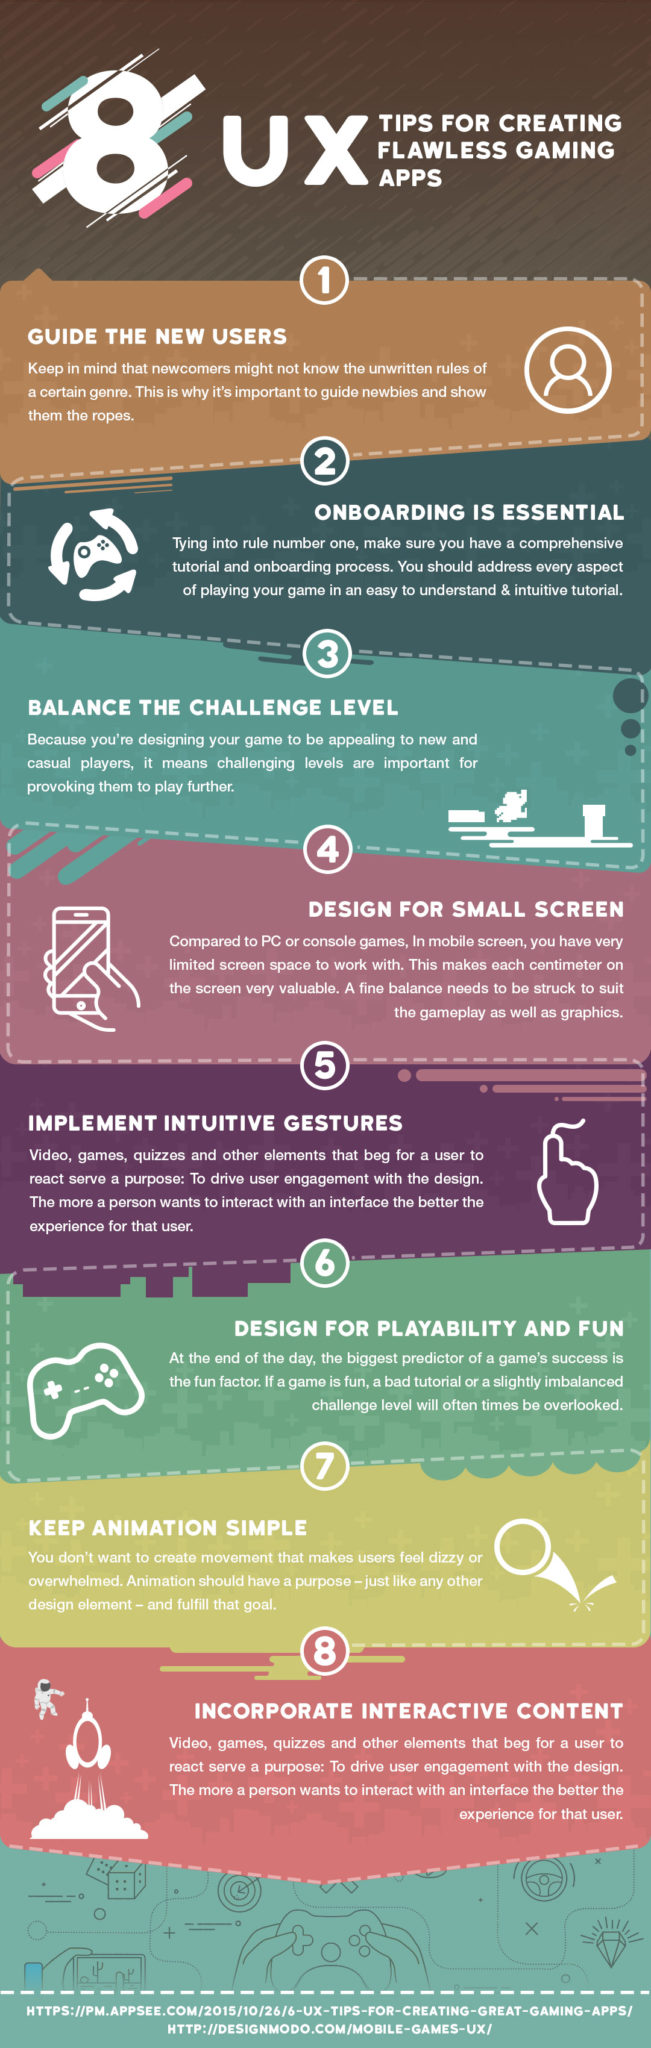 Infographic listing 8 UX tips for gaming apps